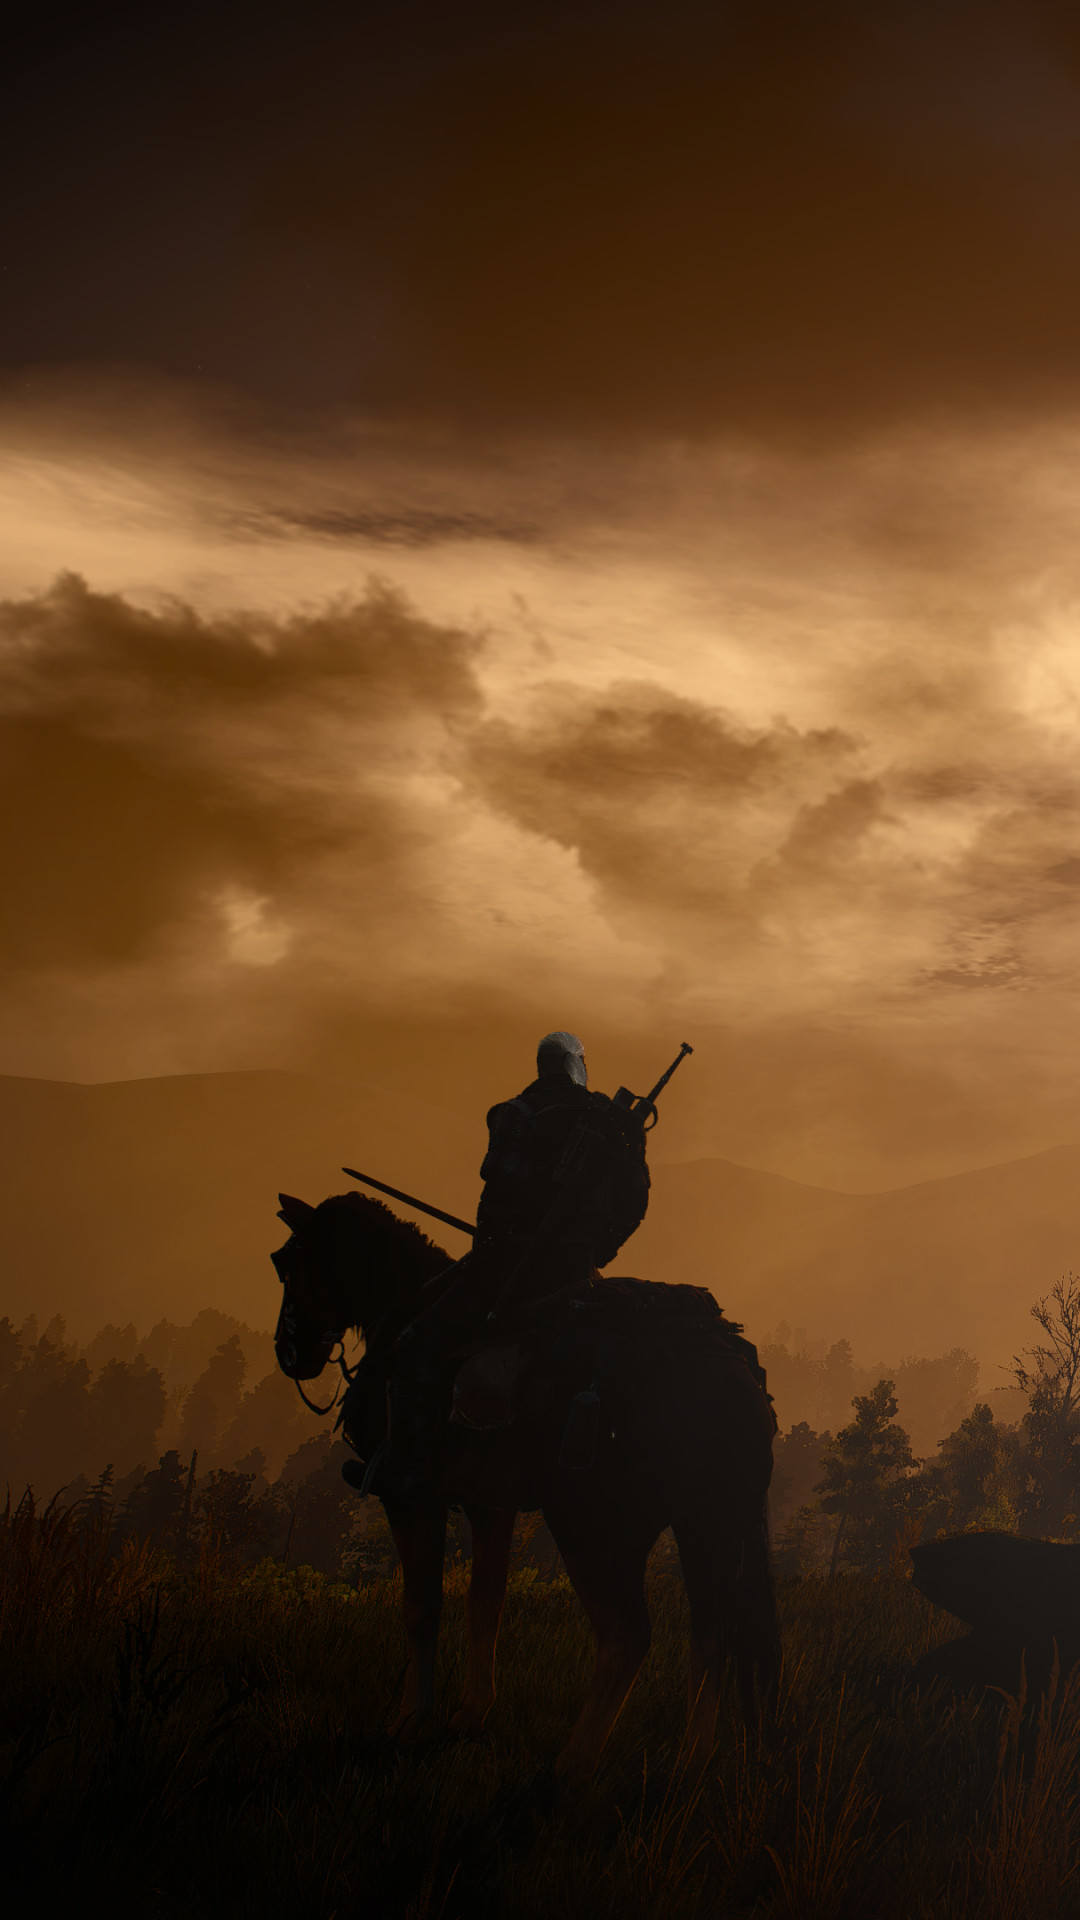 Download this Wallpaper iPhone 6 Plus – Video Game/The Witcher 3: Wild Hunt